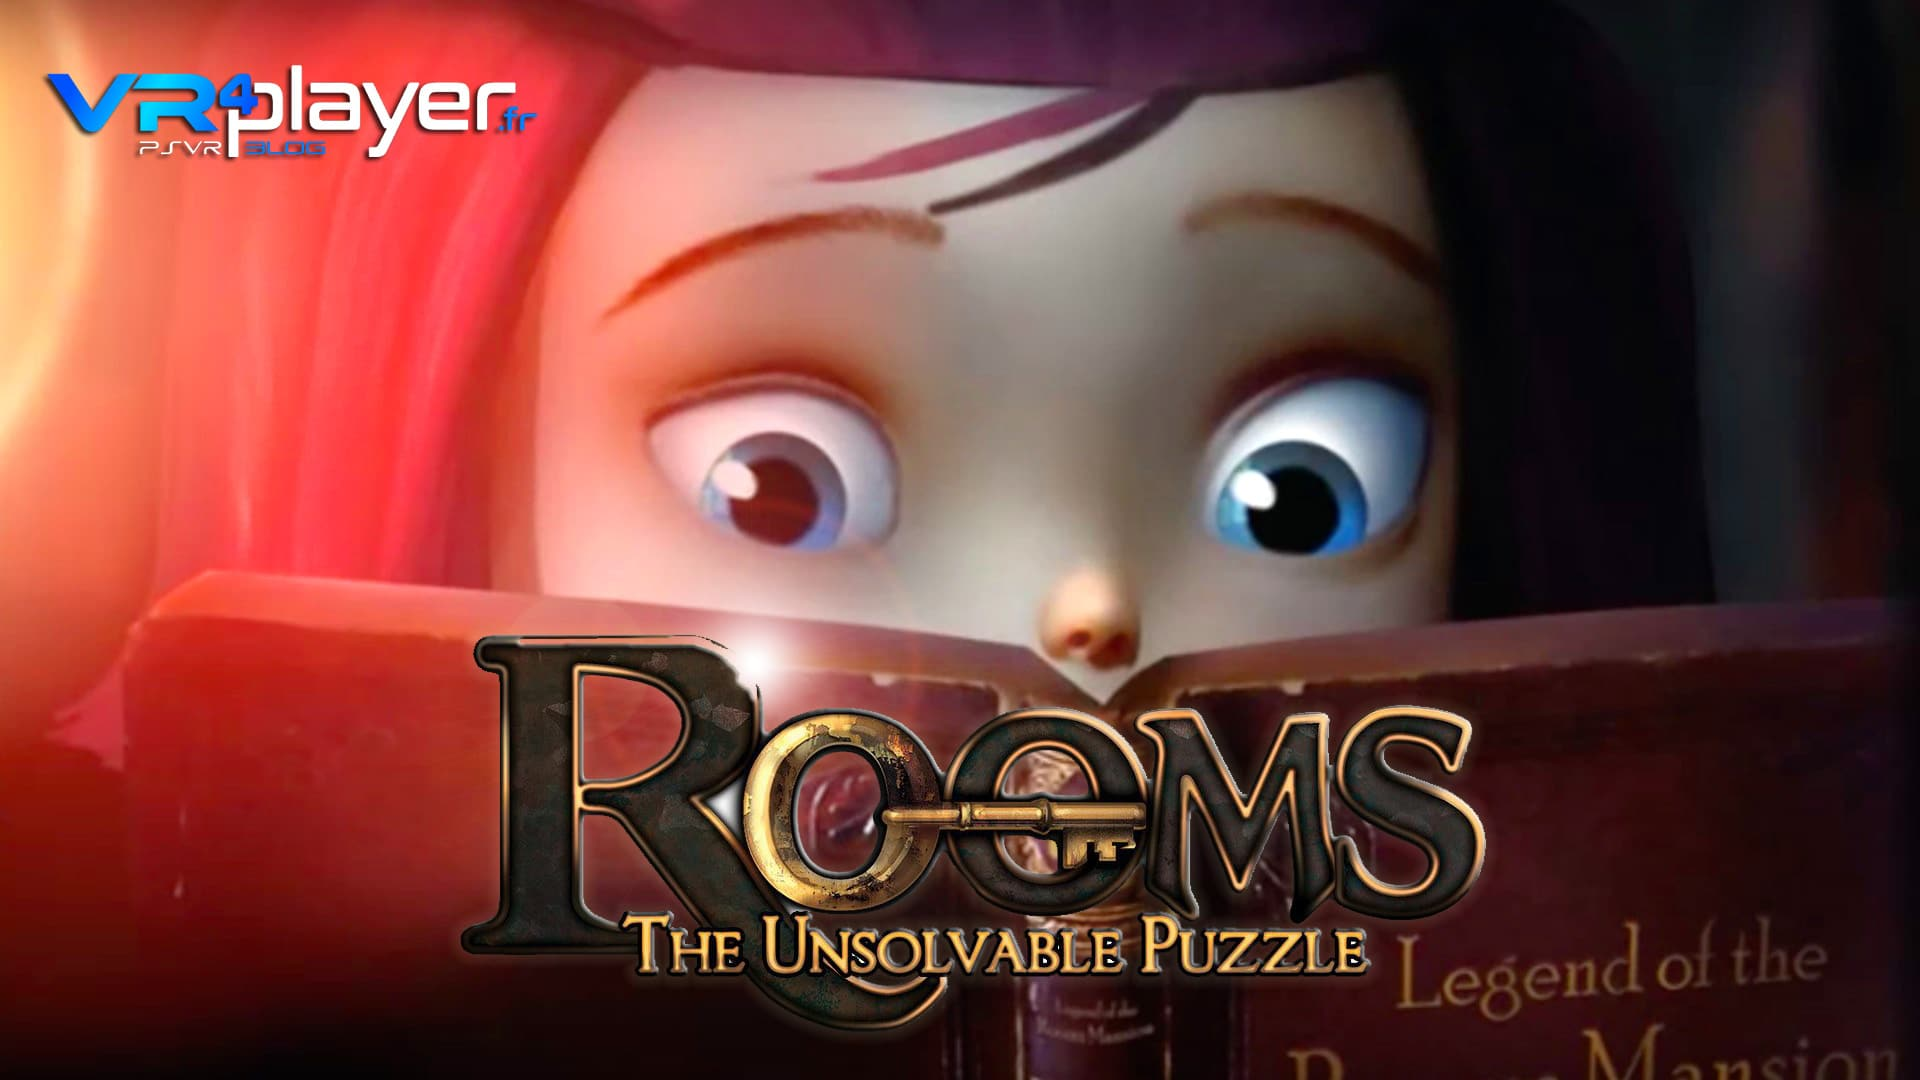 ROOMS The Unsolvable Puzzle sur PSVR vr4player.fr